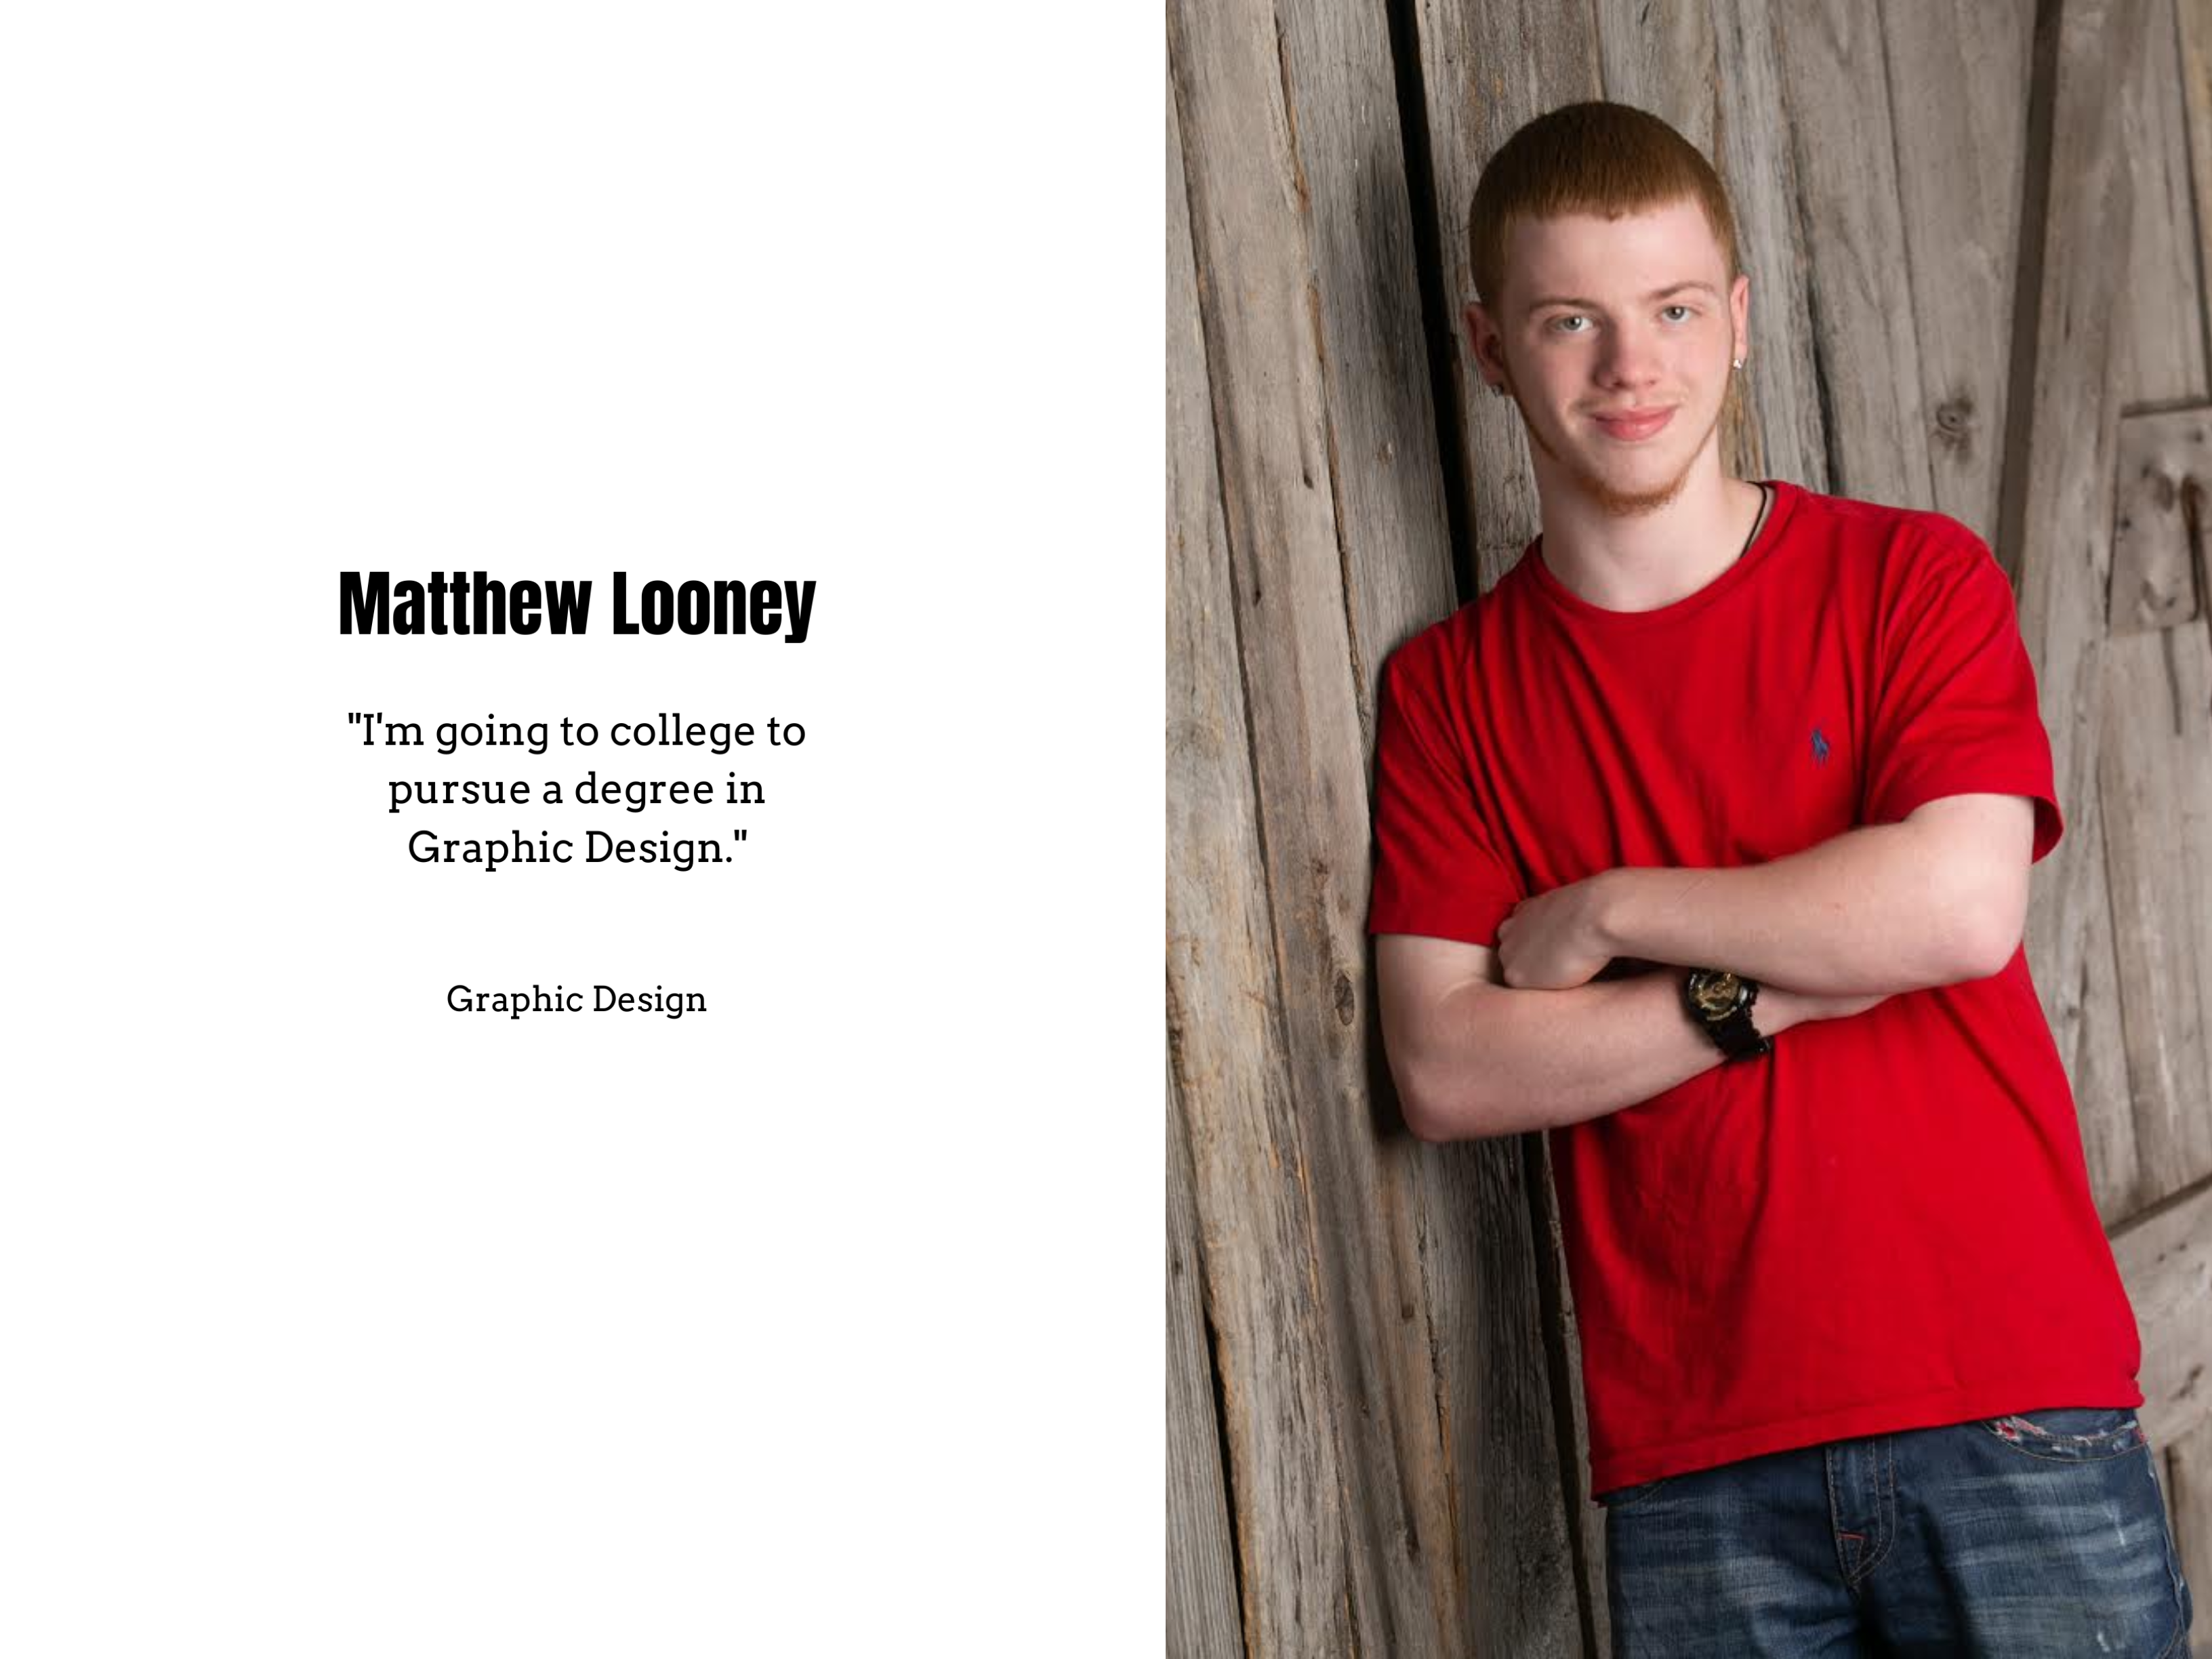 Matthew Looney